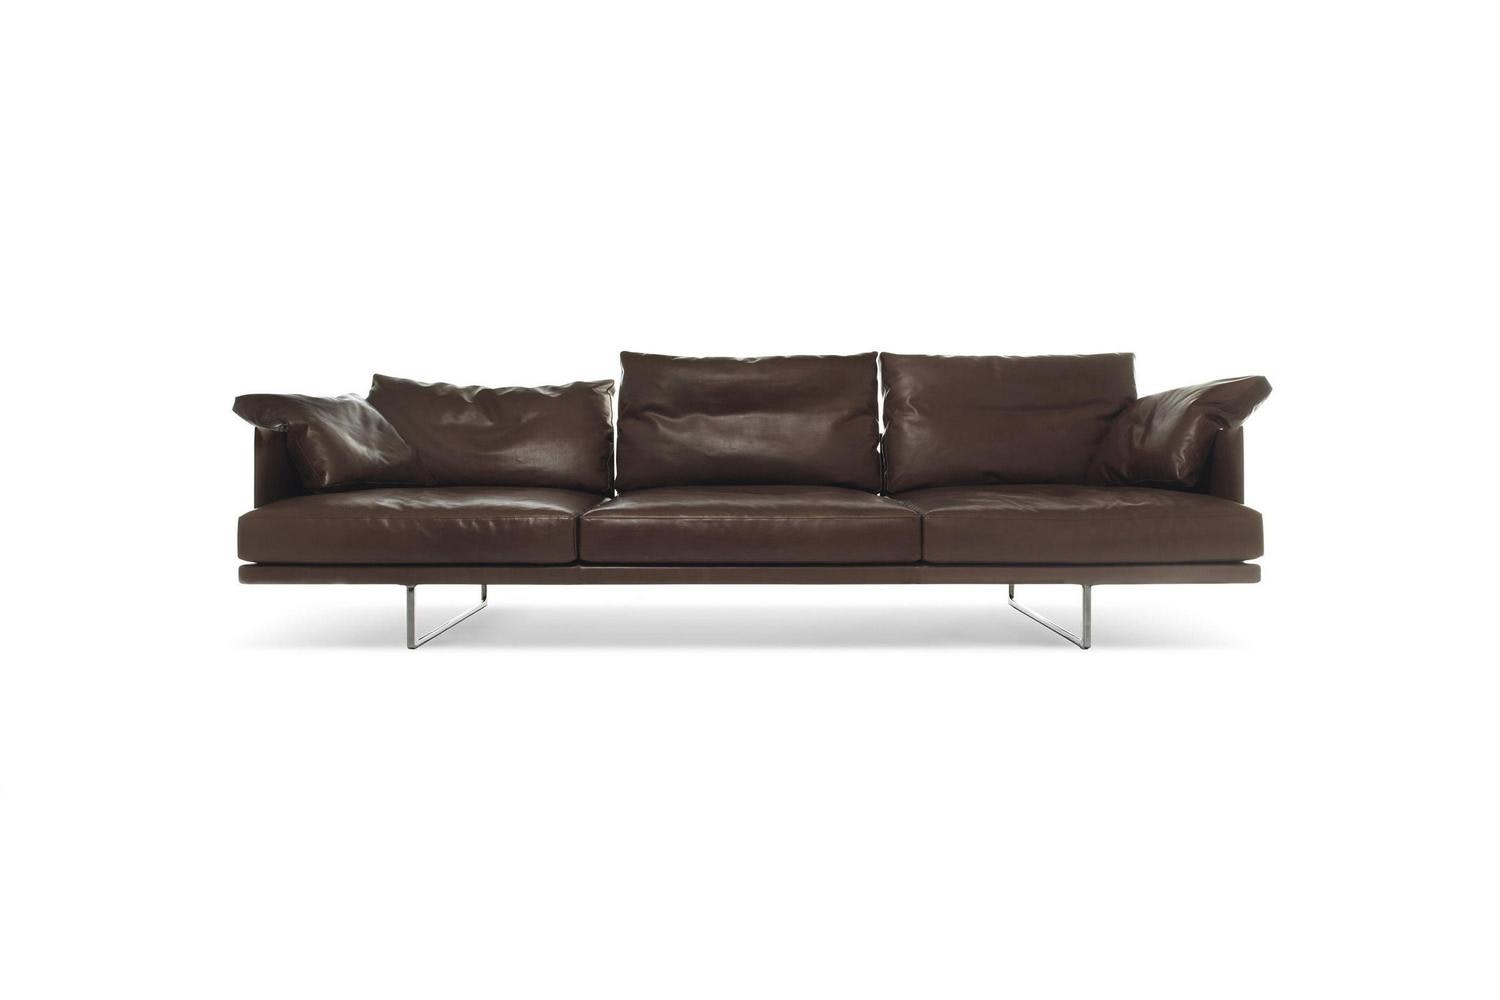 185-187 Toot Sofa by Piero Lissoni for Cassina